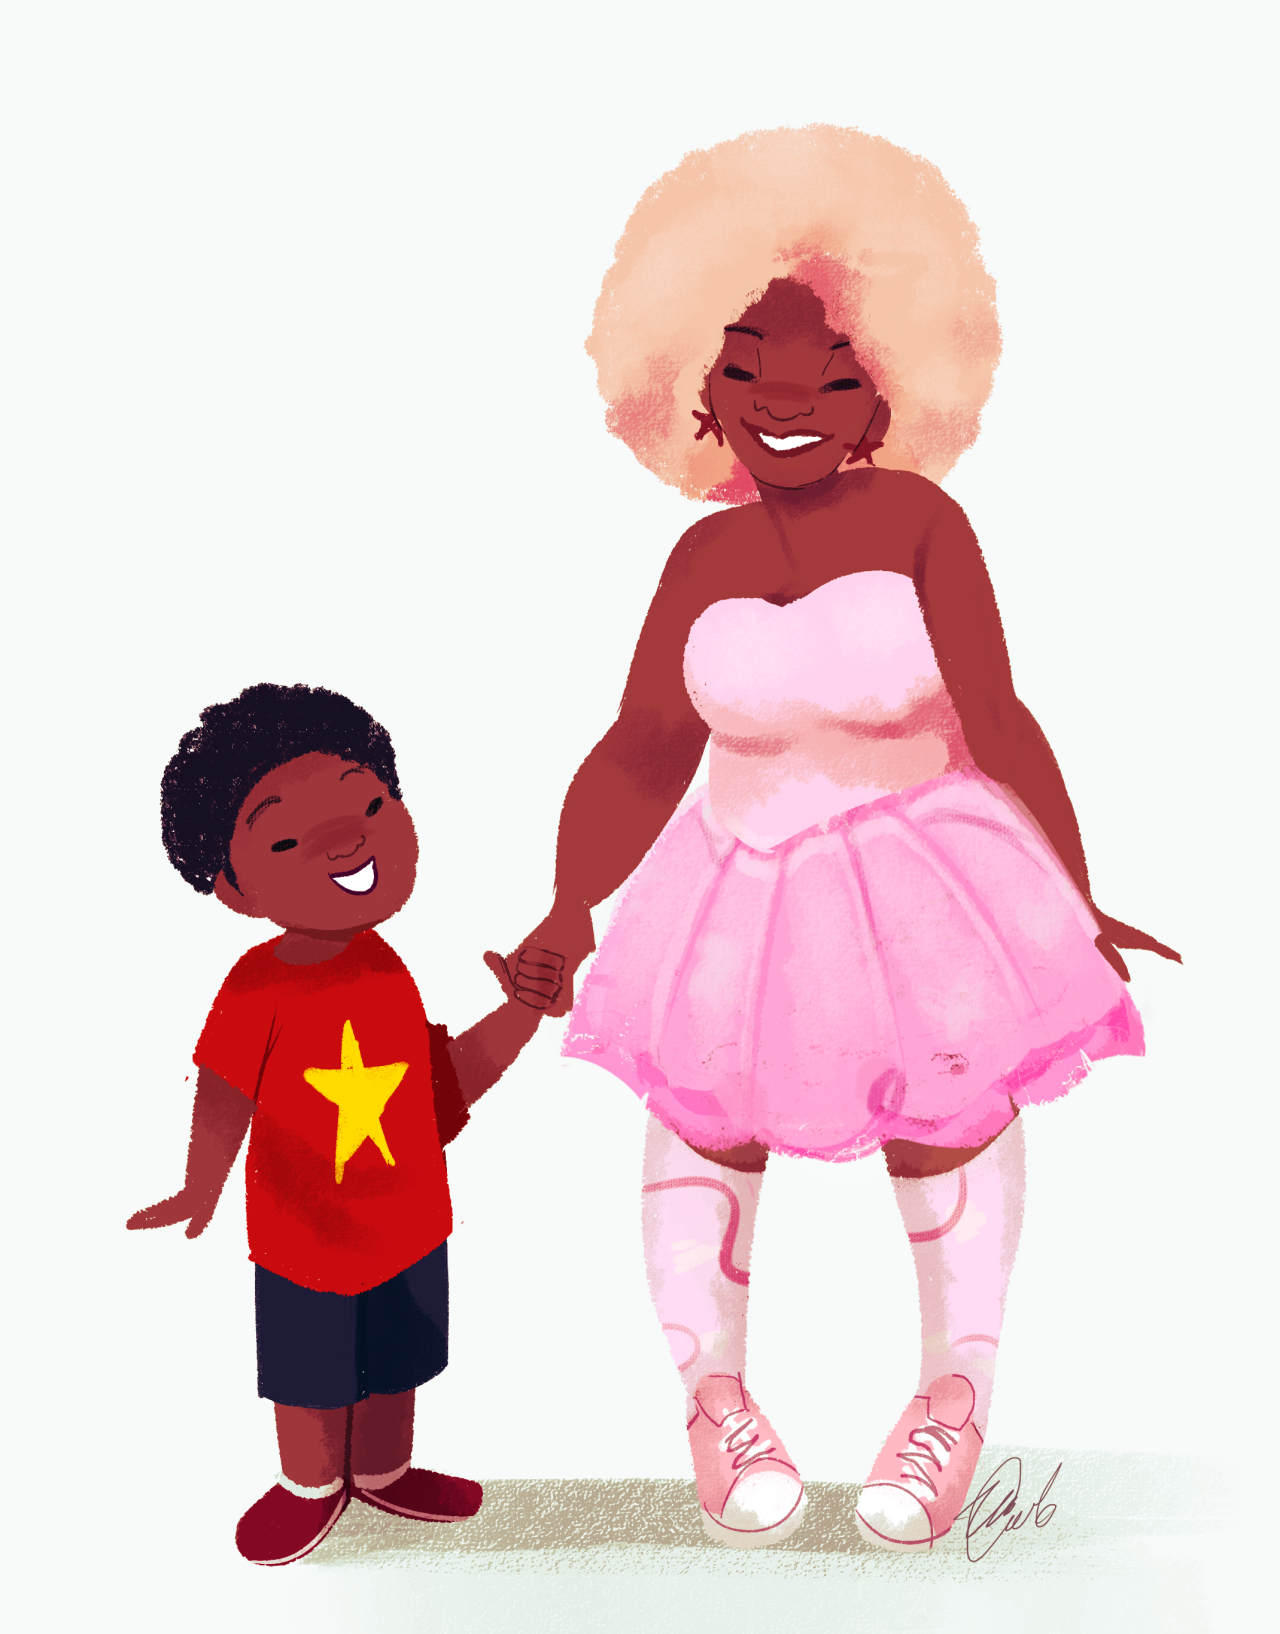 I'm sorry, I just had to doodle them. Adorable cosplay ♥